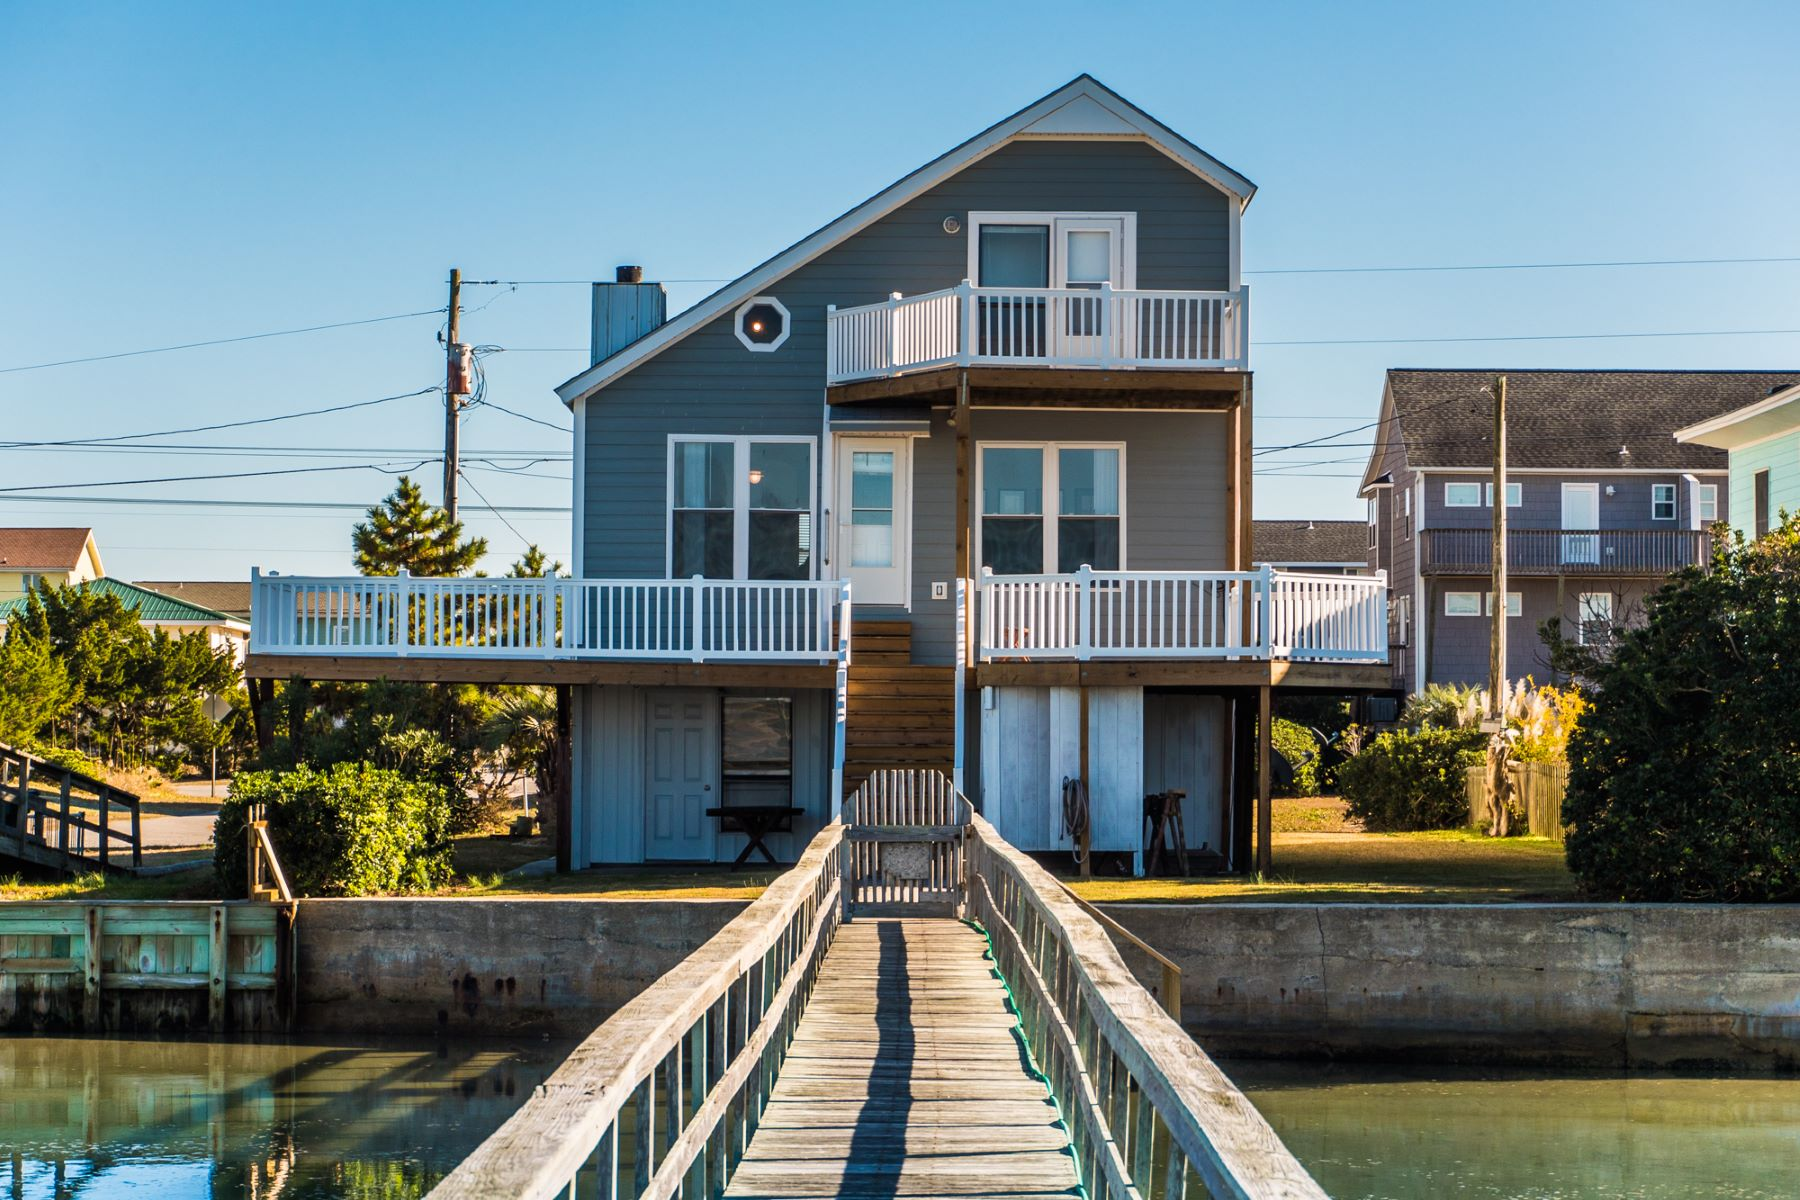 Single Family Home for Sale at Sound Front Beach House with Sweeping Intracoastal Views 1002 Carolina Blvd, Topsail Beach, North Carolina, 28445 United States